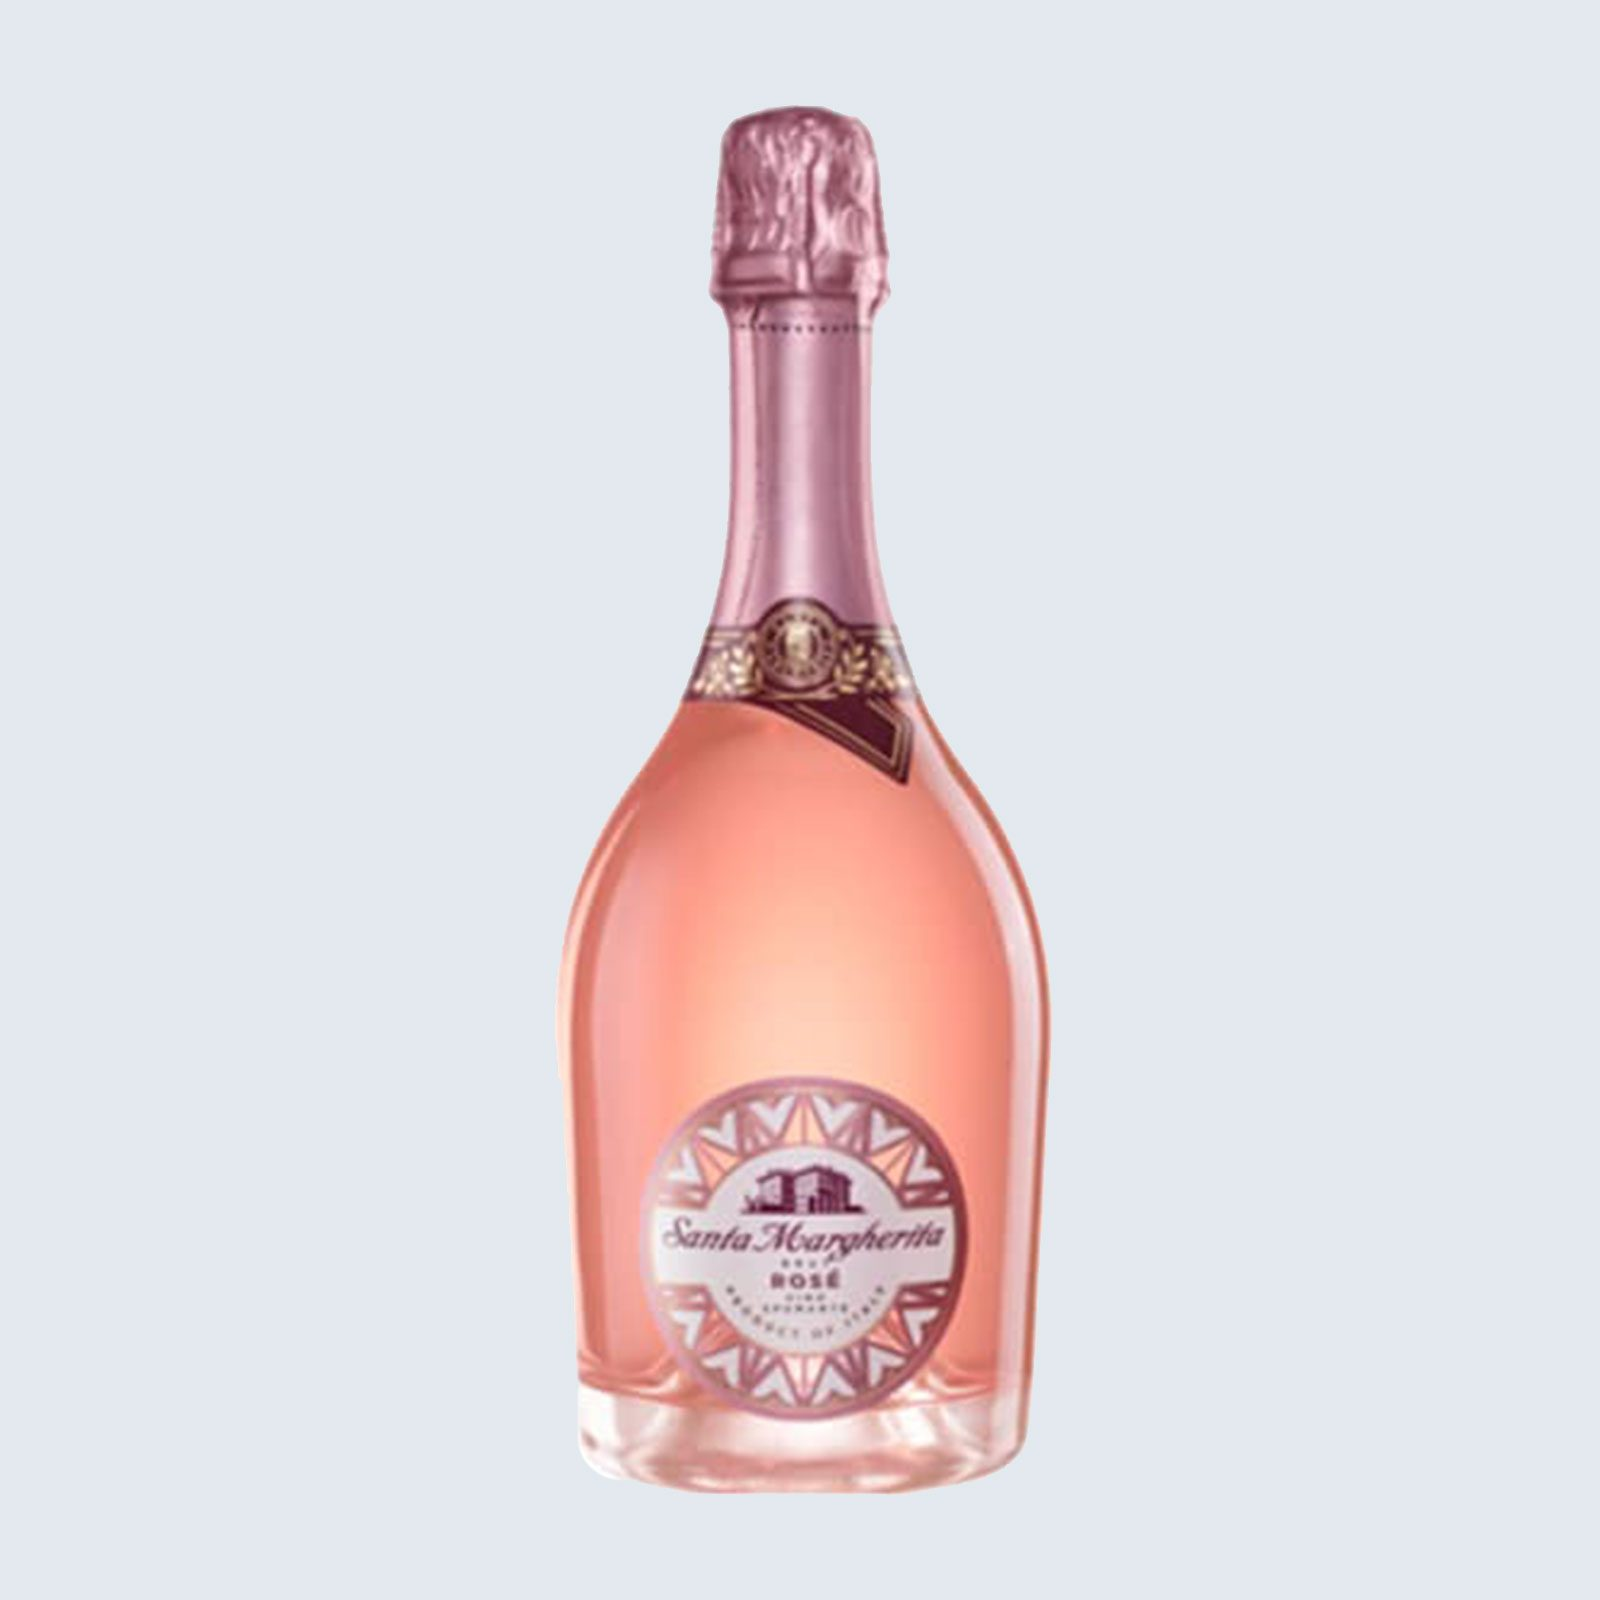 For the bubbliest in the room: Santa Margherita Sparkling Rosé